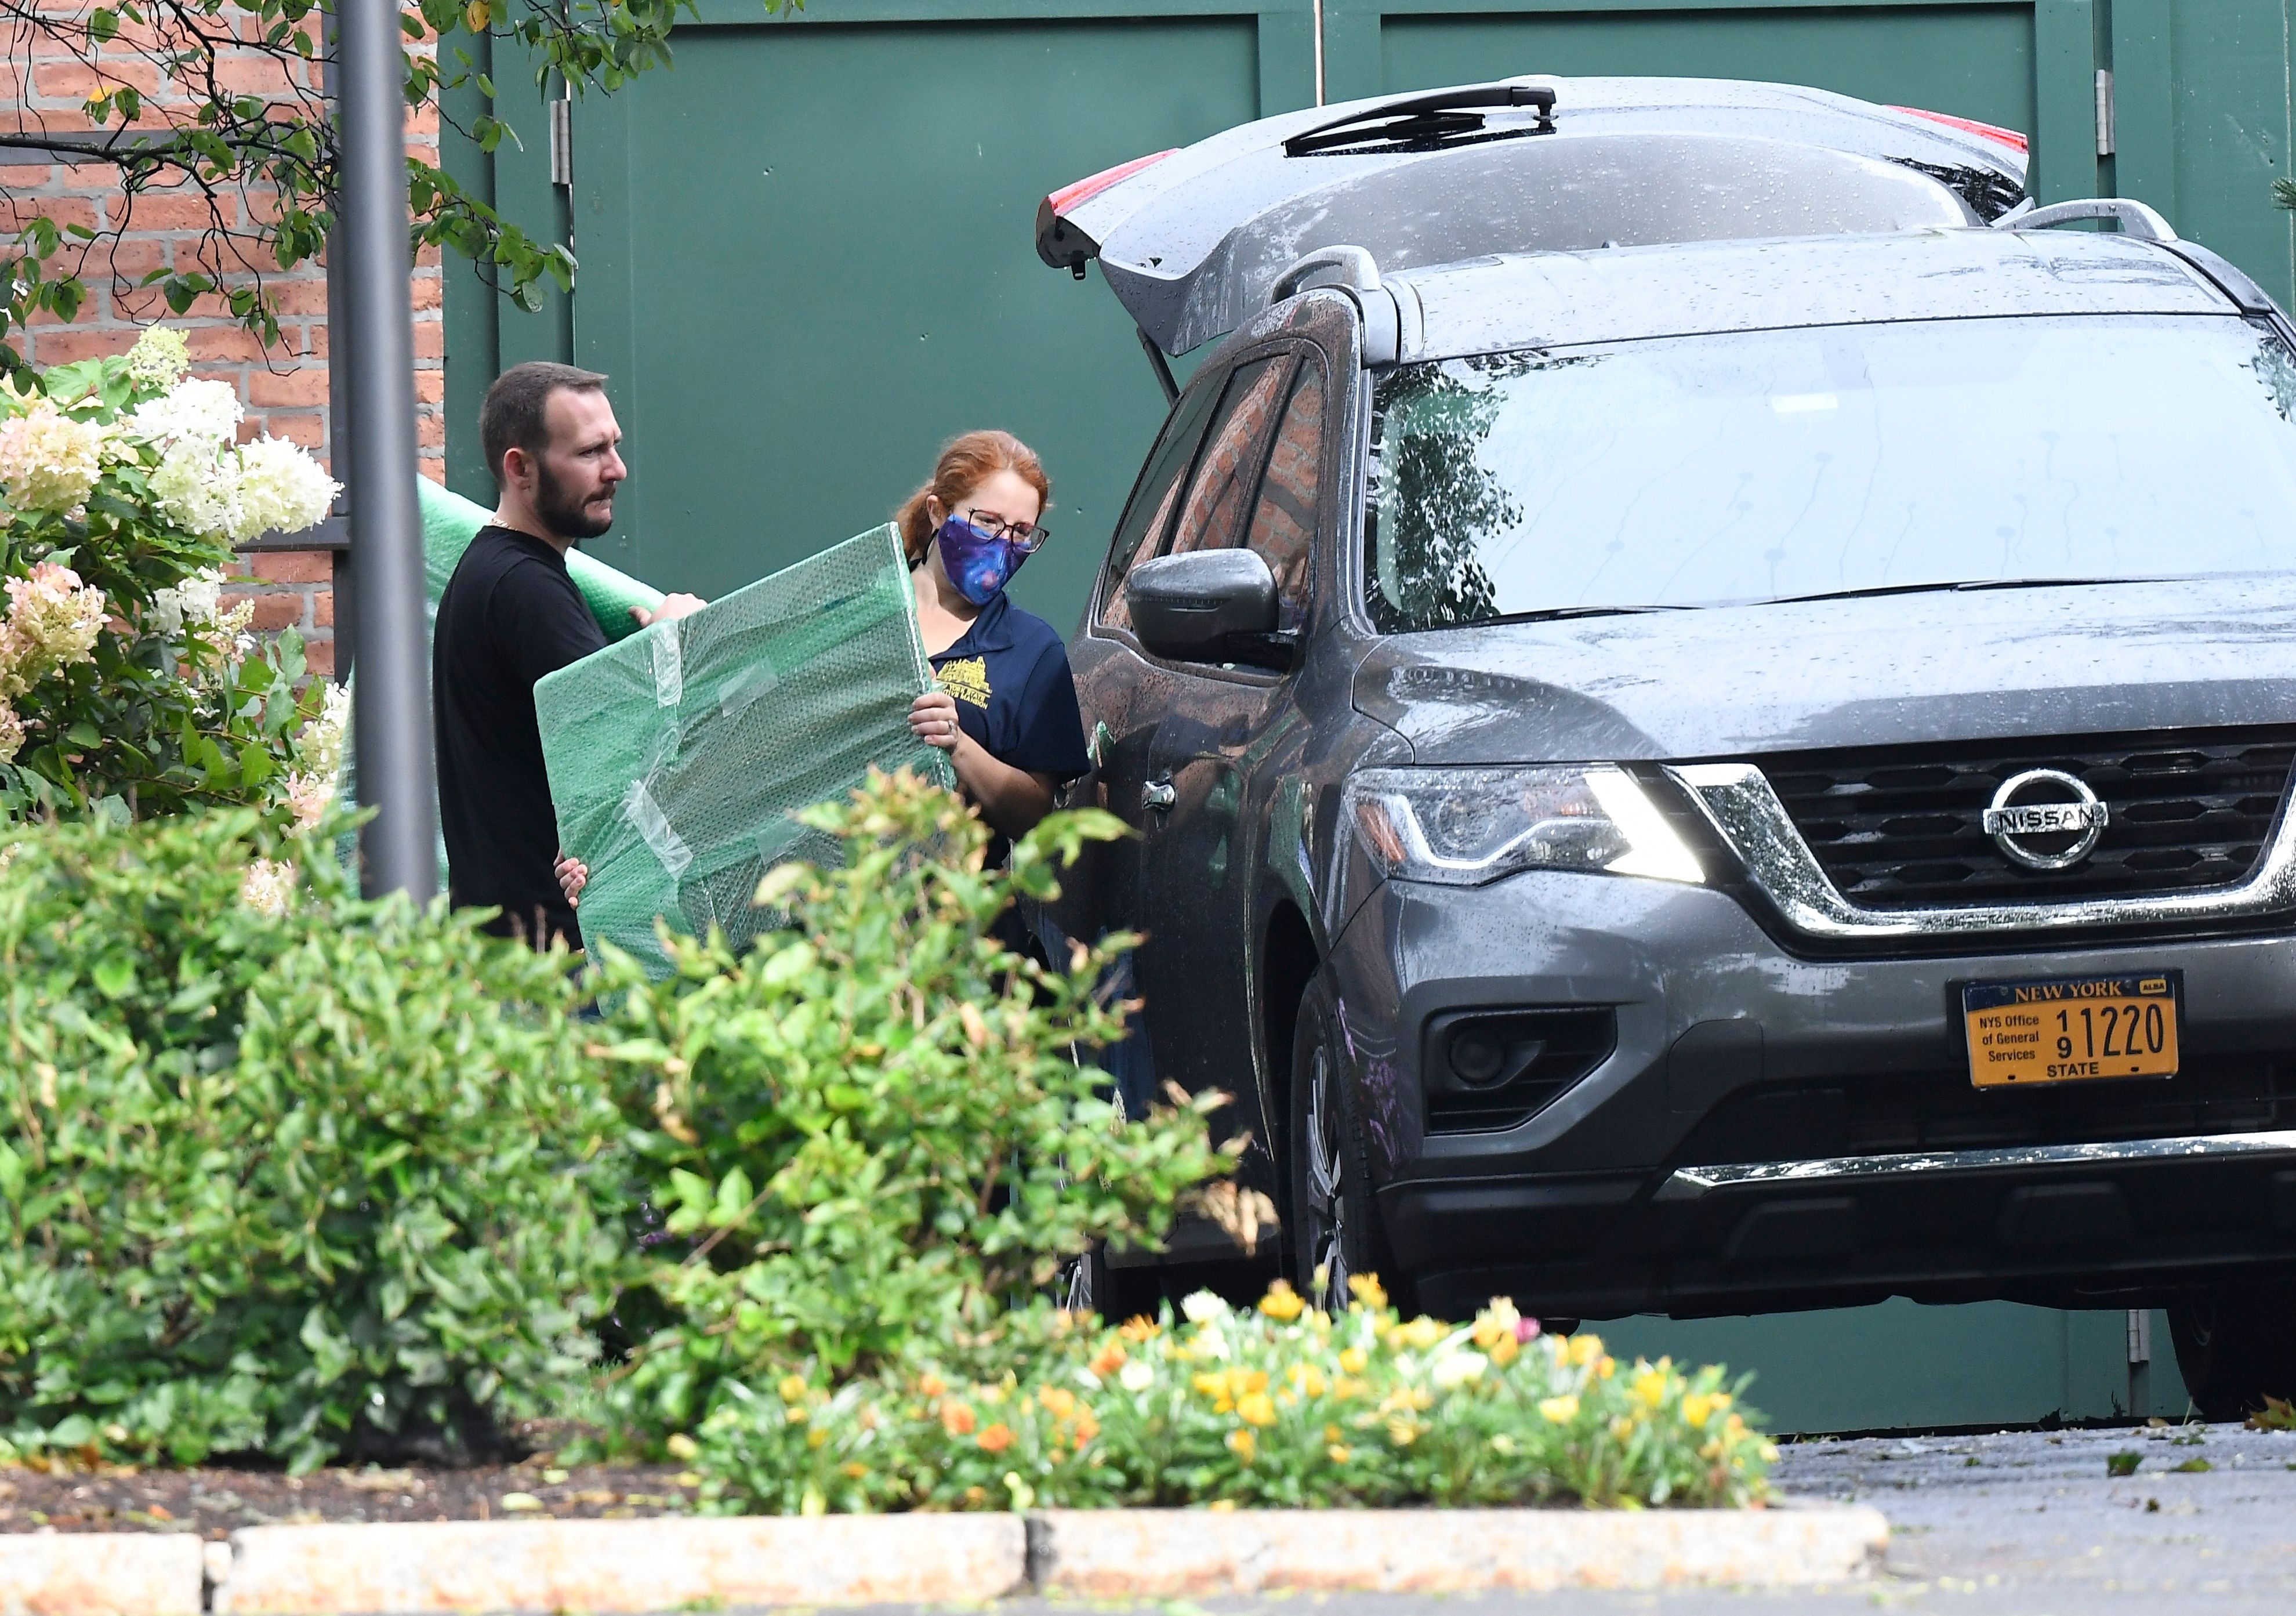 Employees from the state office of general services are seen moving items into an SUV outside the Governor's mansion